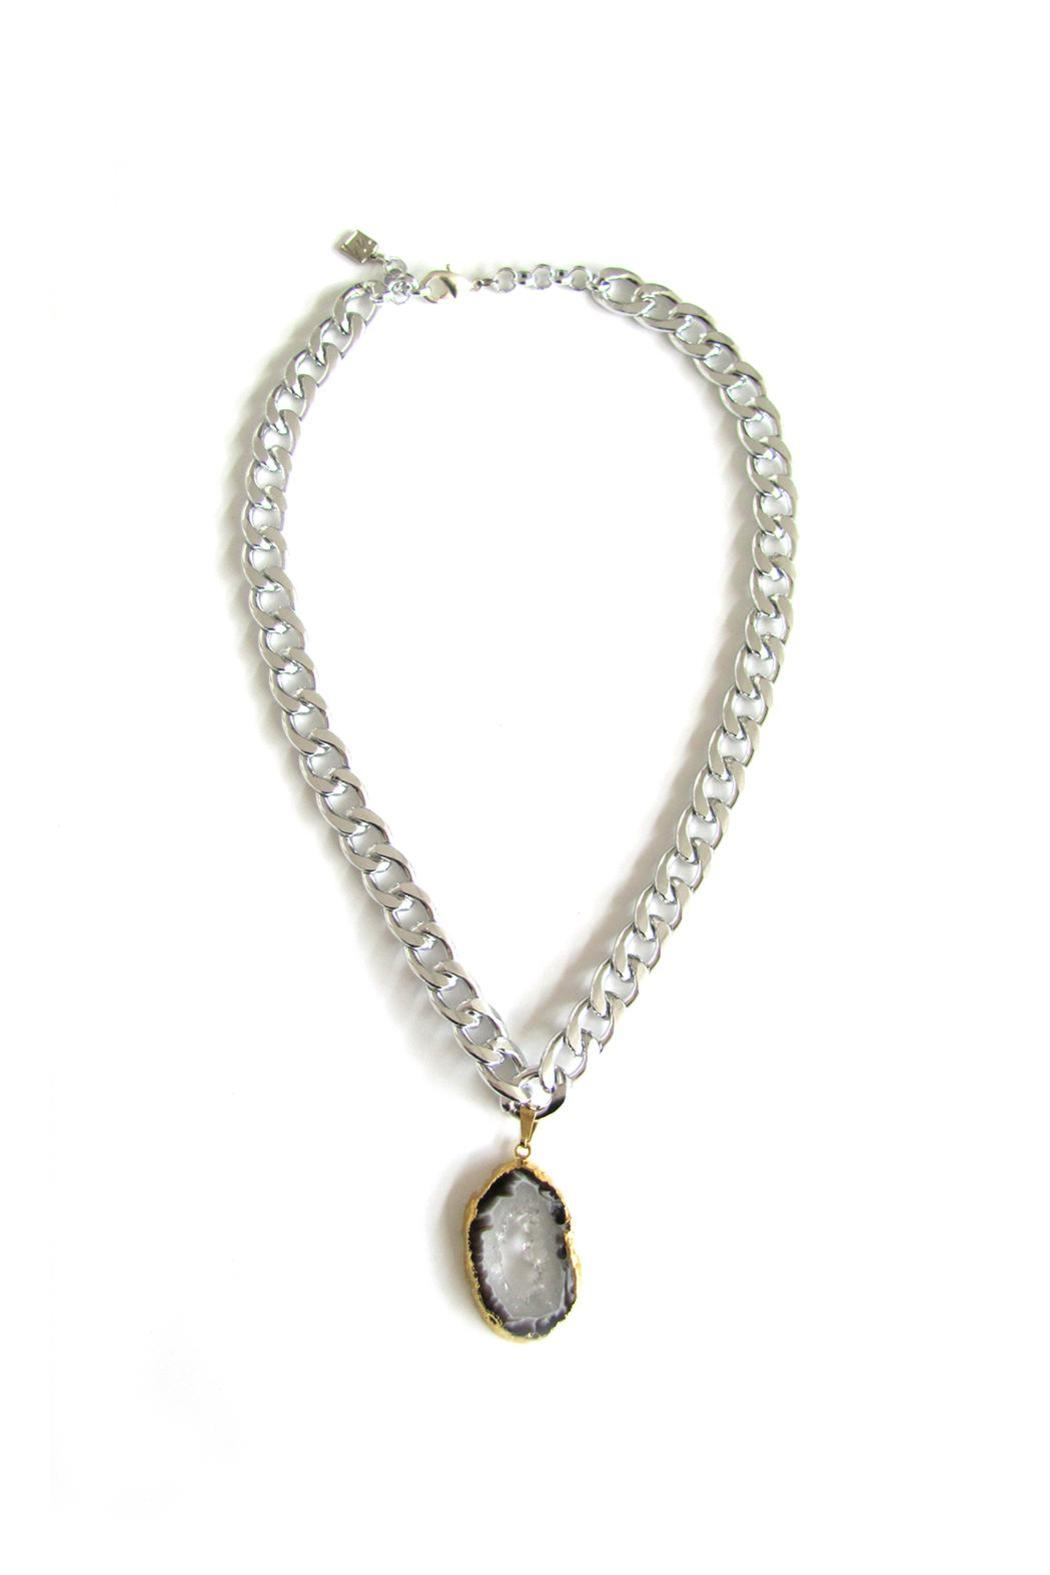 Malia Jewelry Silver Agate Necklace - Main Image